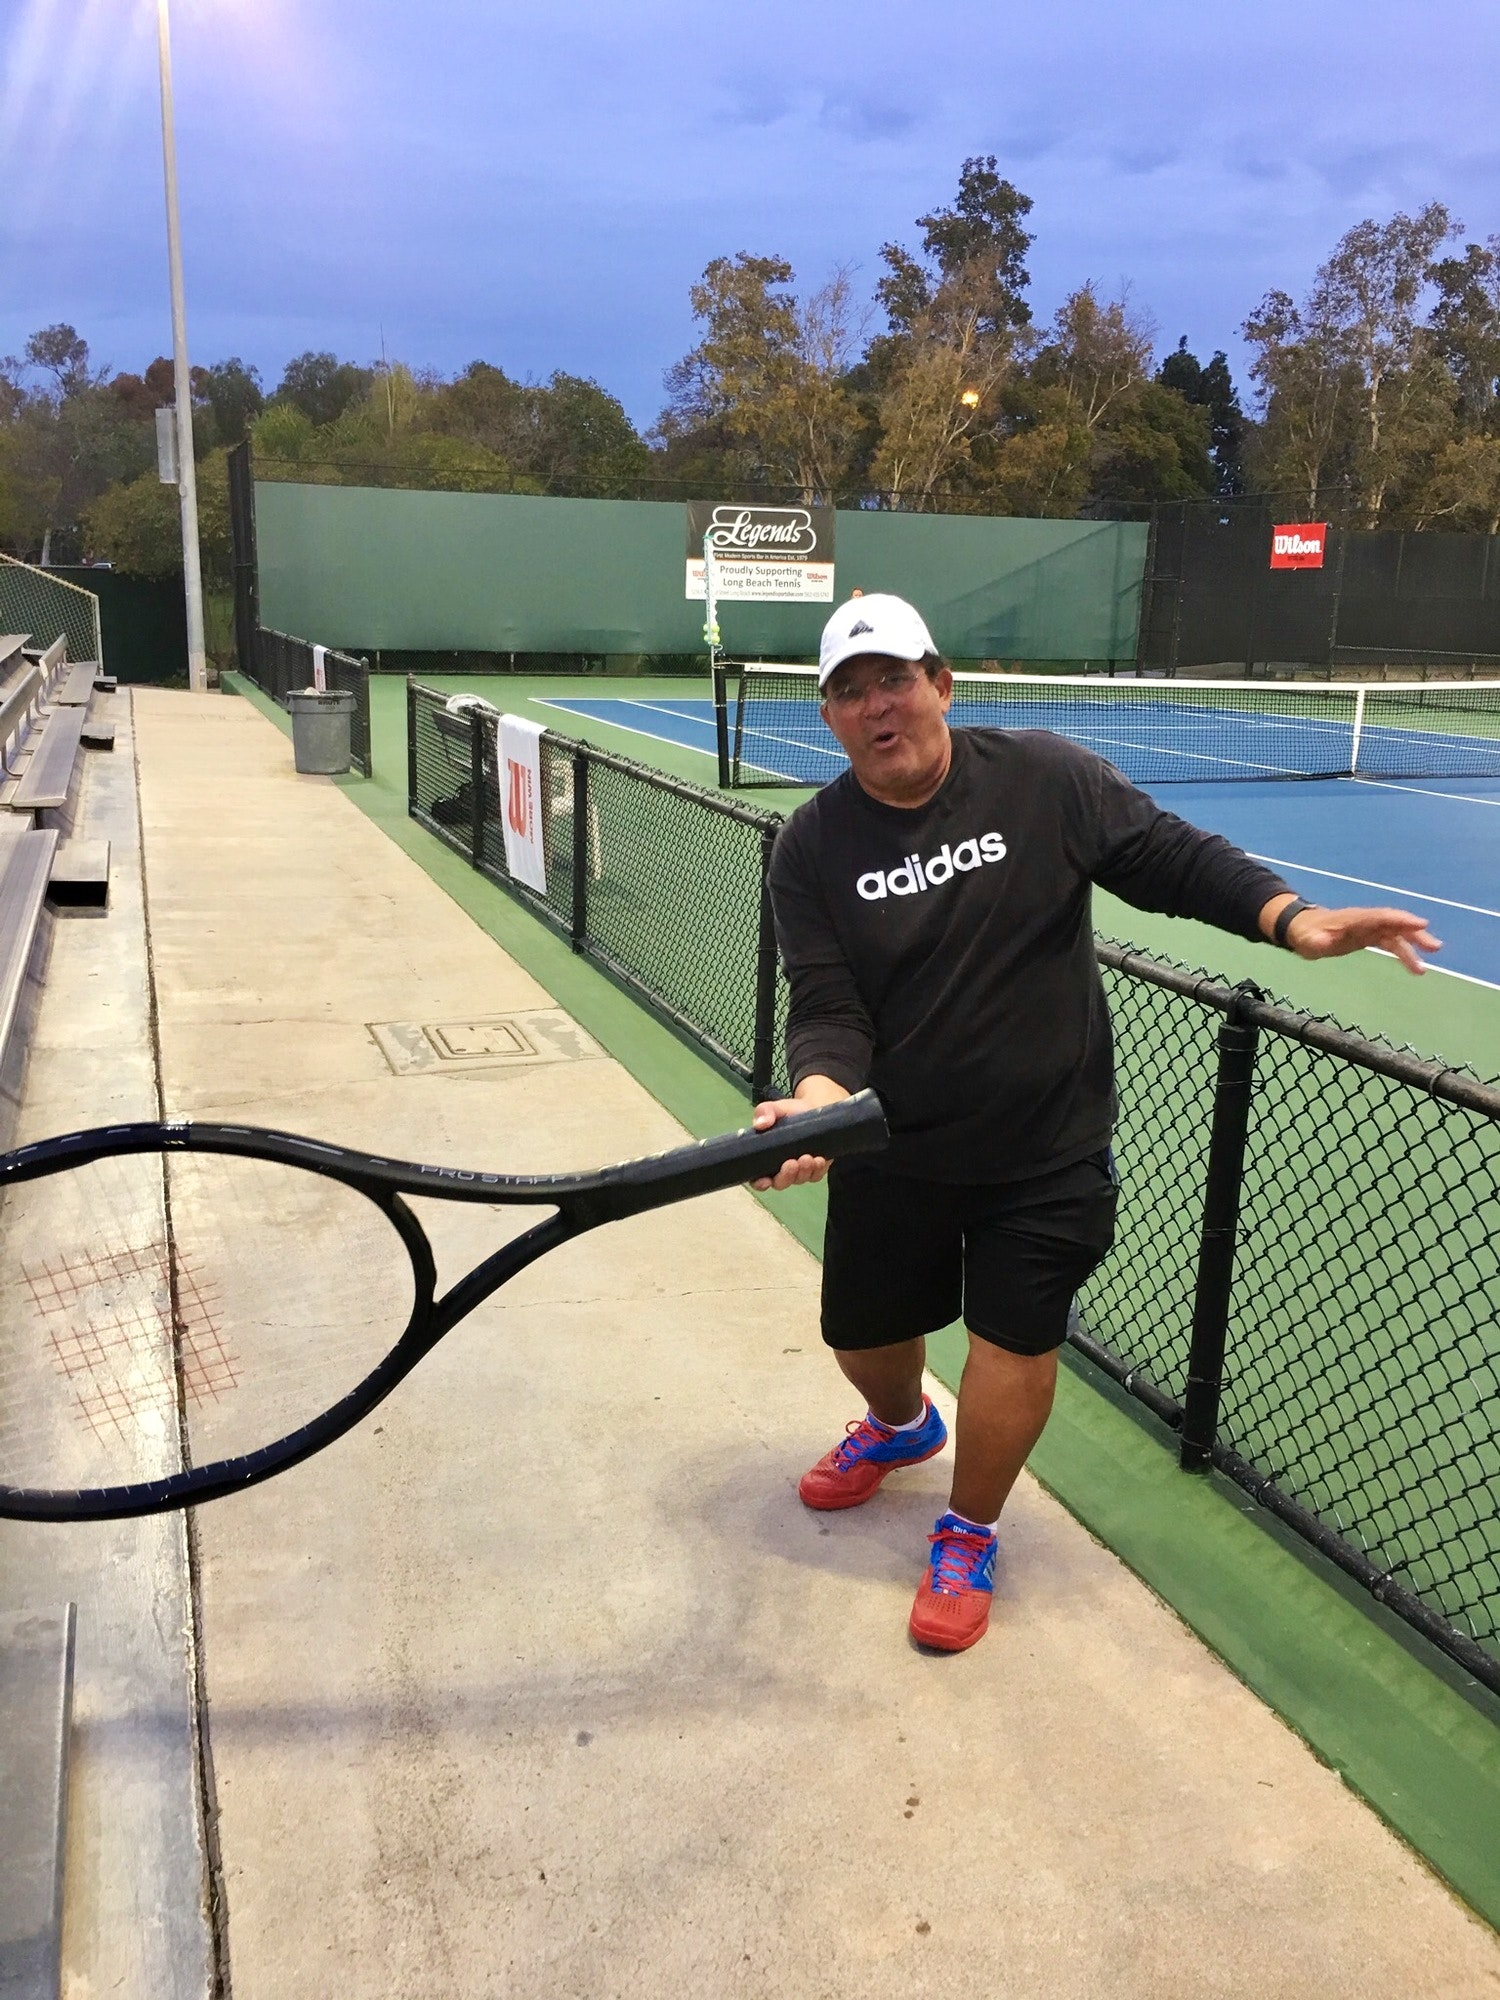 Tennis lessons in norwalk ca kids beginner adult private tennis lessons in norwalk ca kids beginner adult private lessons mytennislessons aiddatafo Image collections